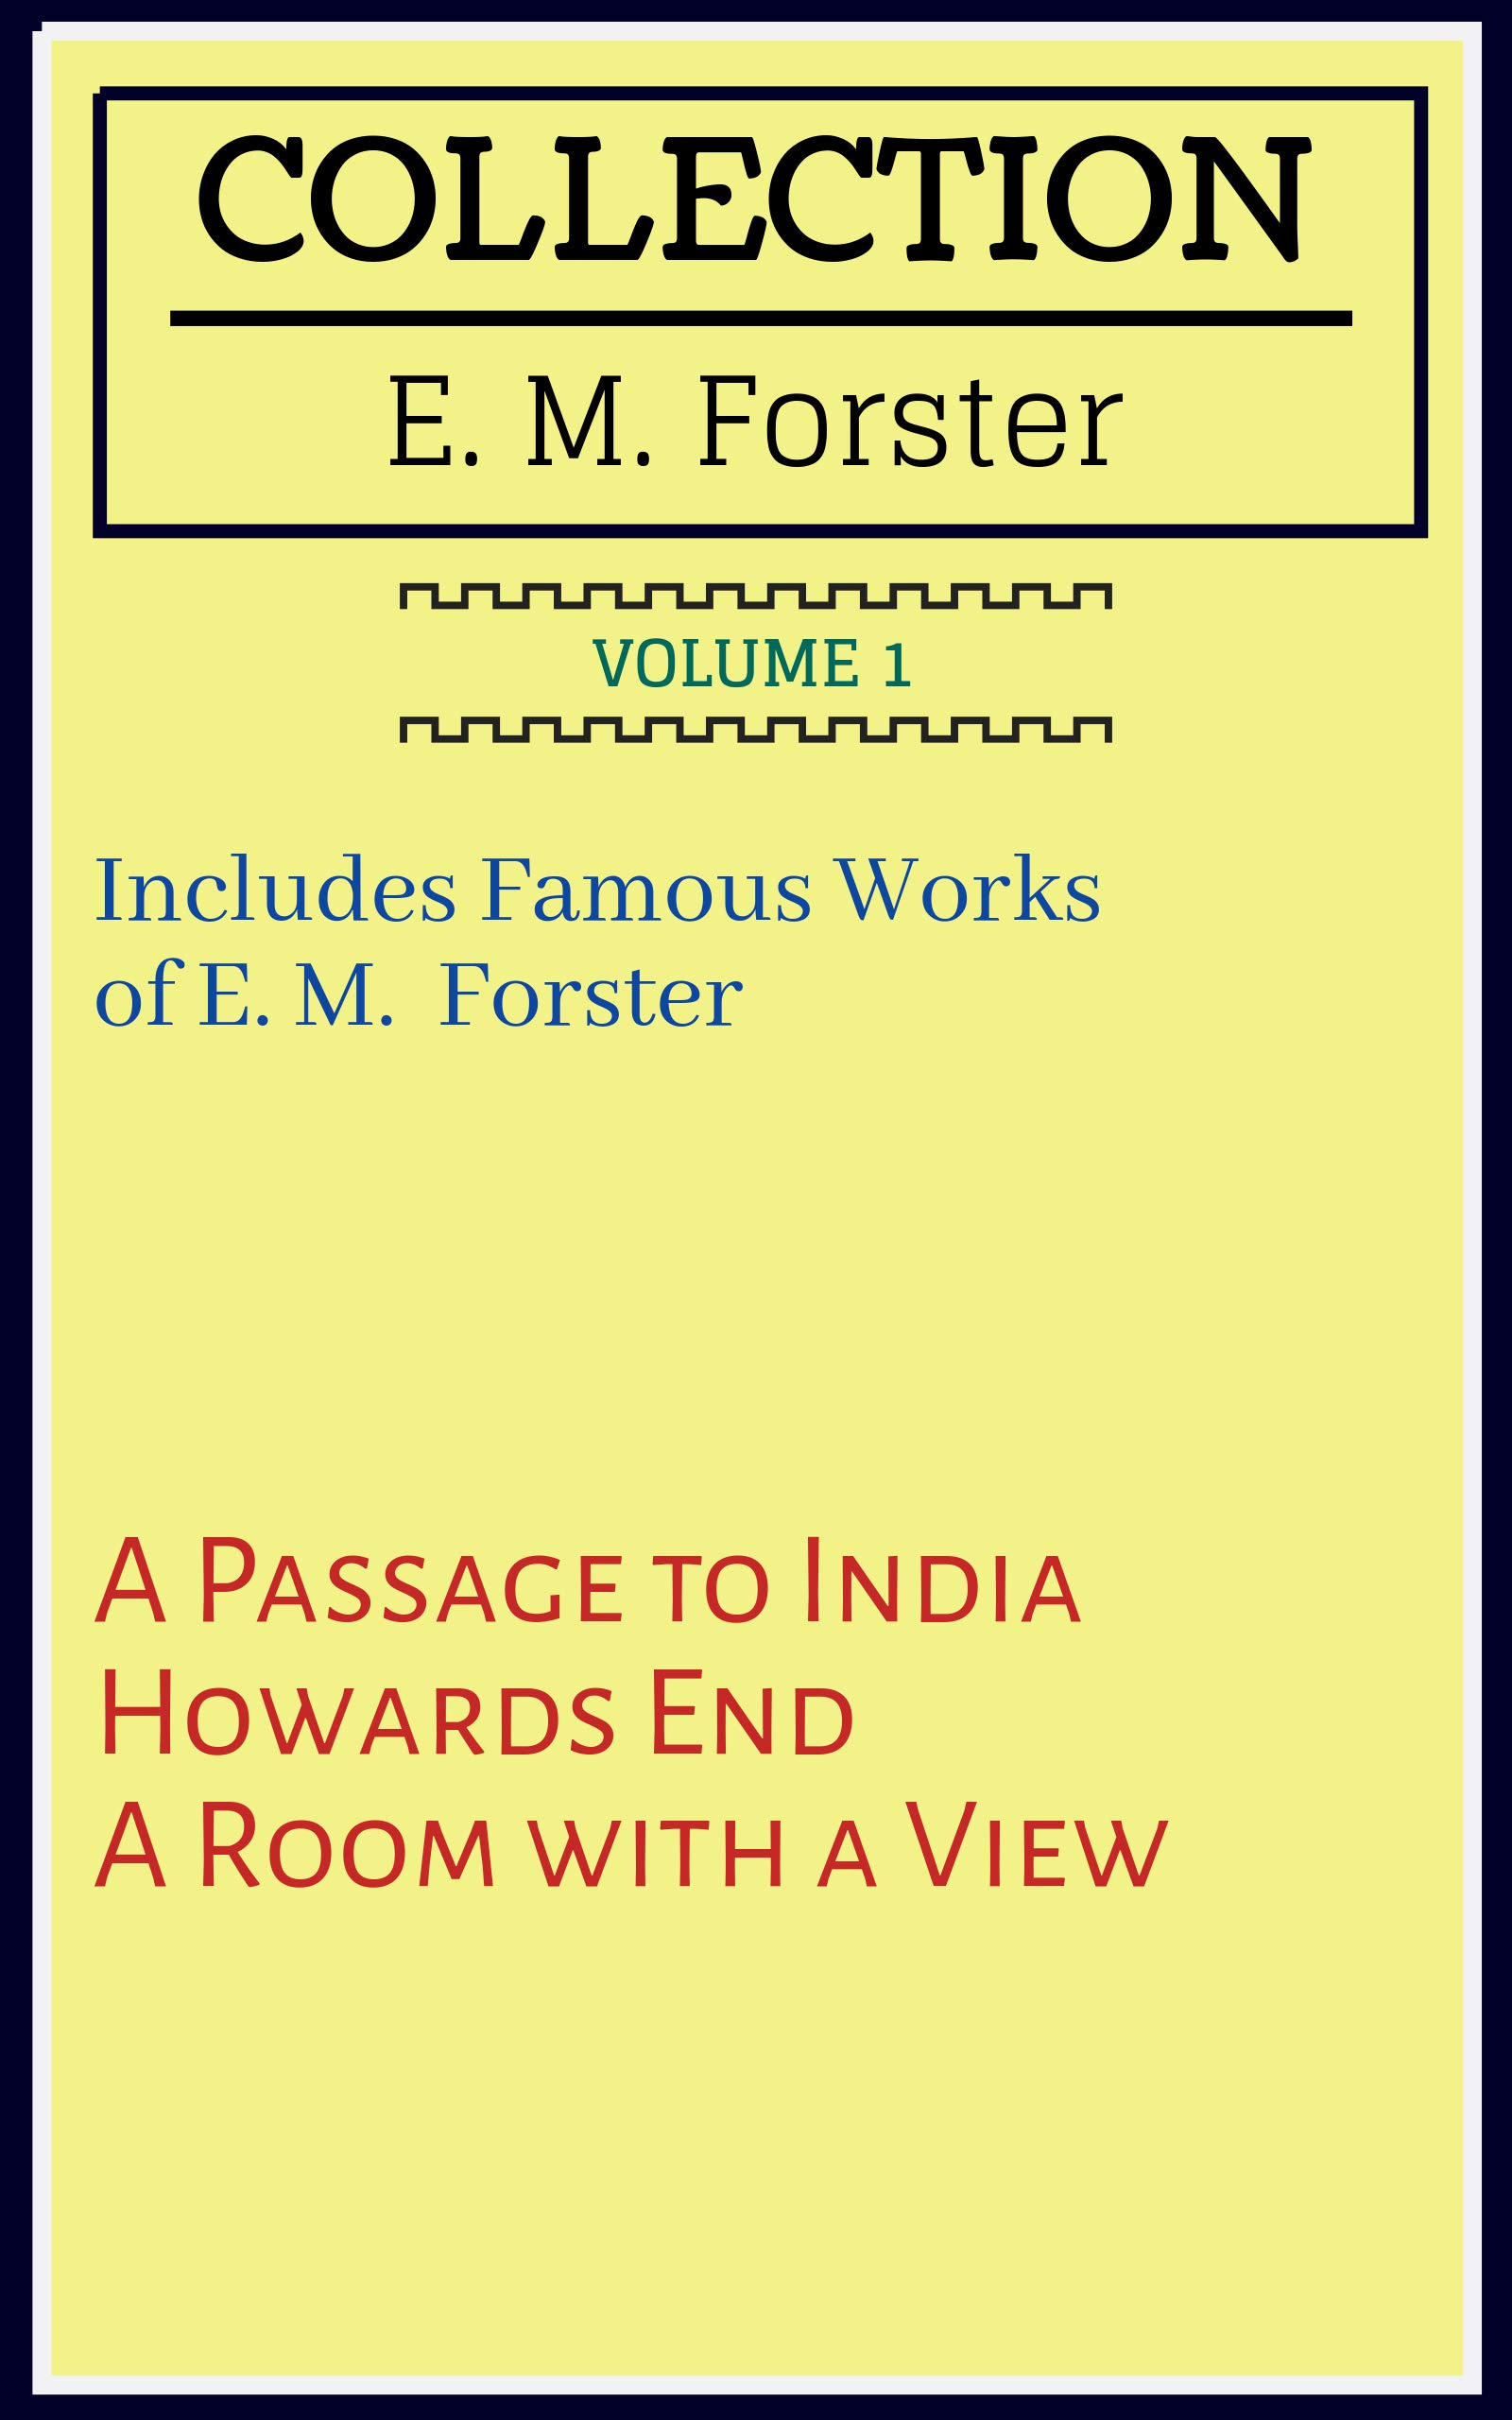 Collection E. M. Forster: A Passage to India, Howards End, A Room with a View